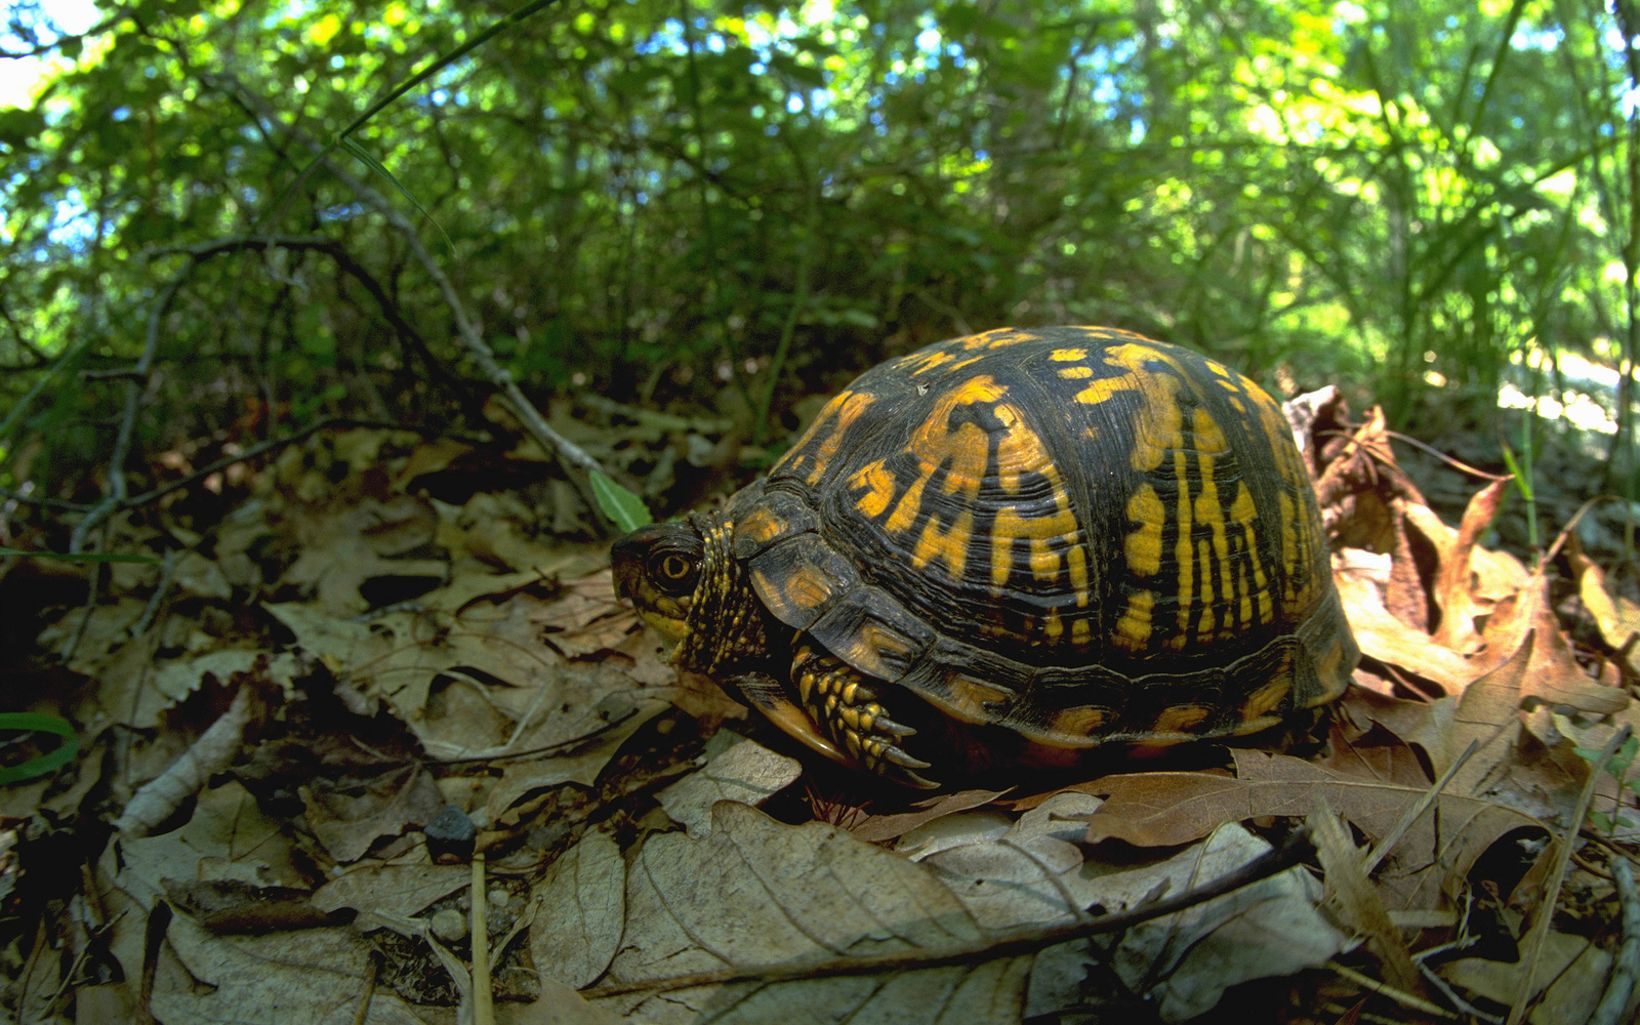 A box turtle explores our Mashomack Preserve